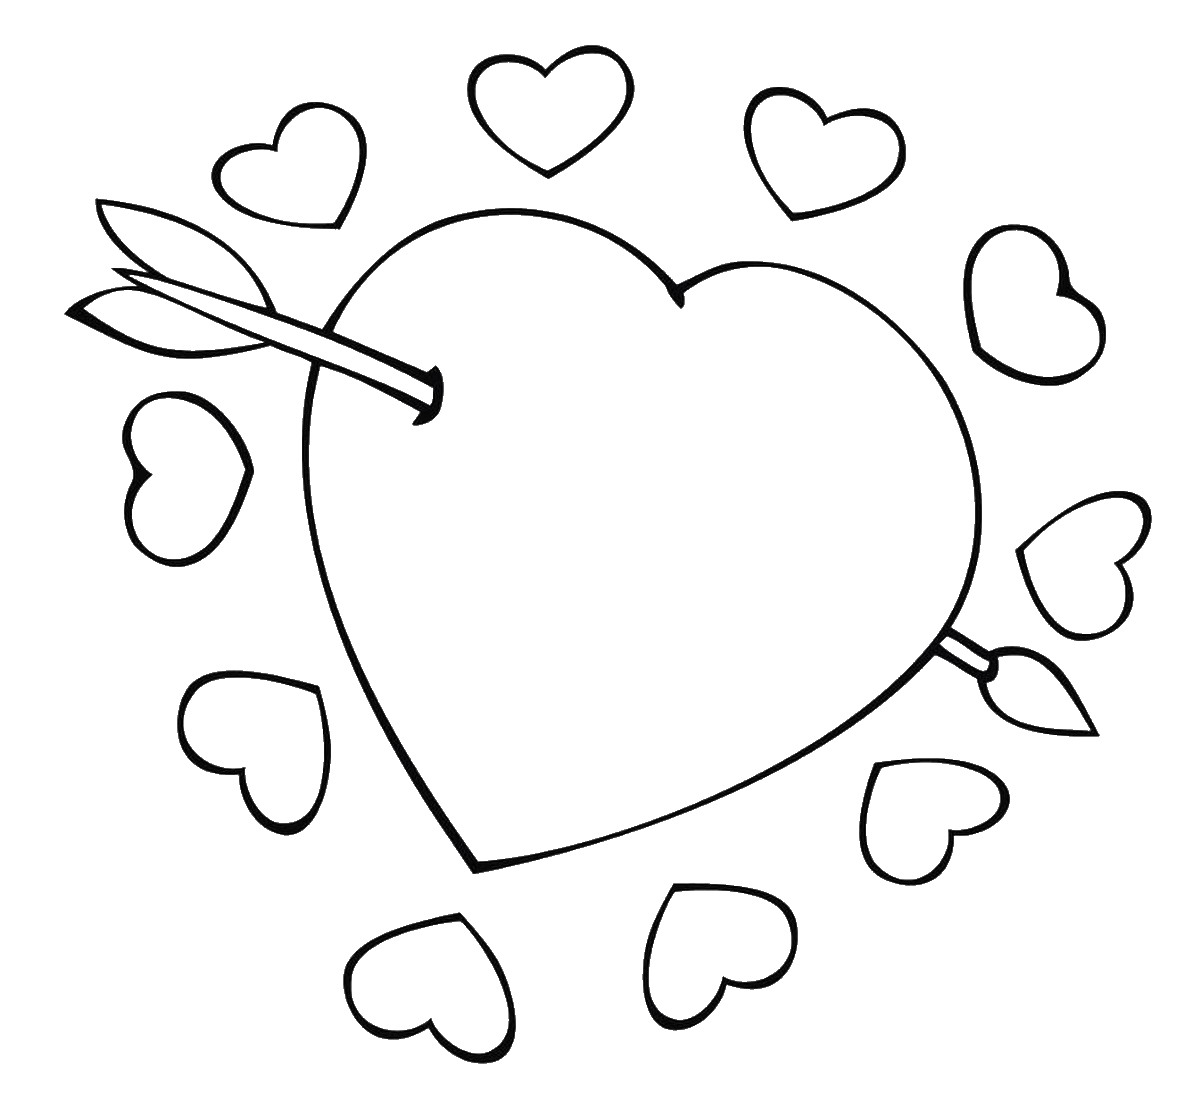 Free Coloring Pages Hearts Hearts Coloring Pages